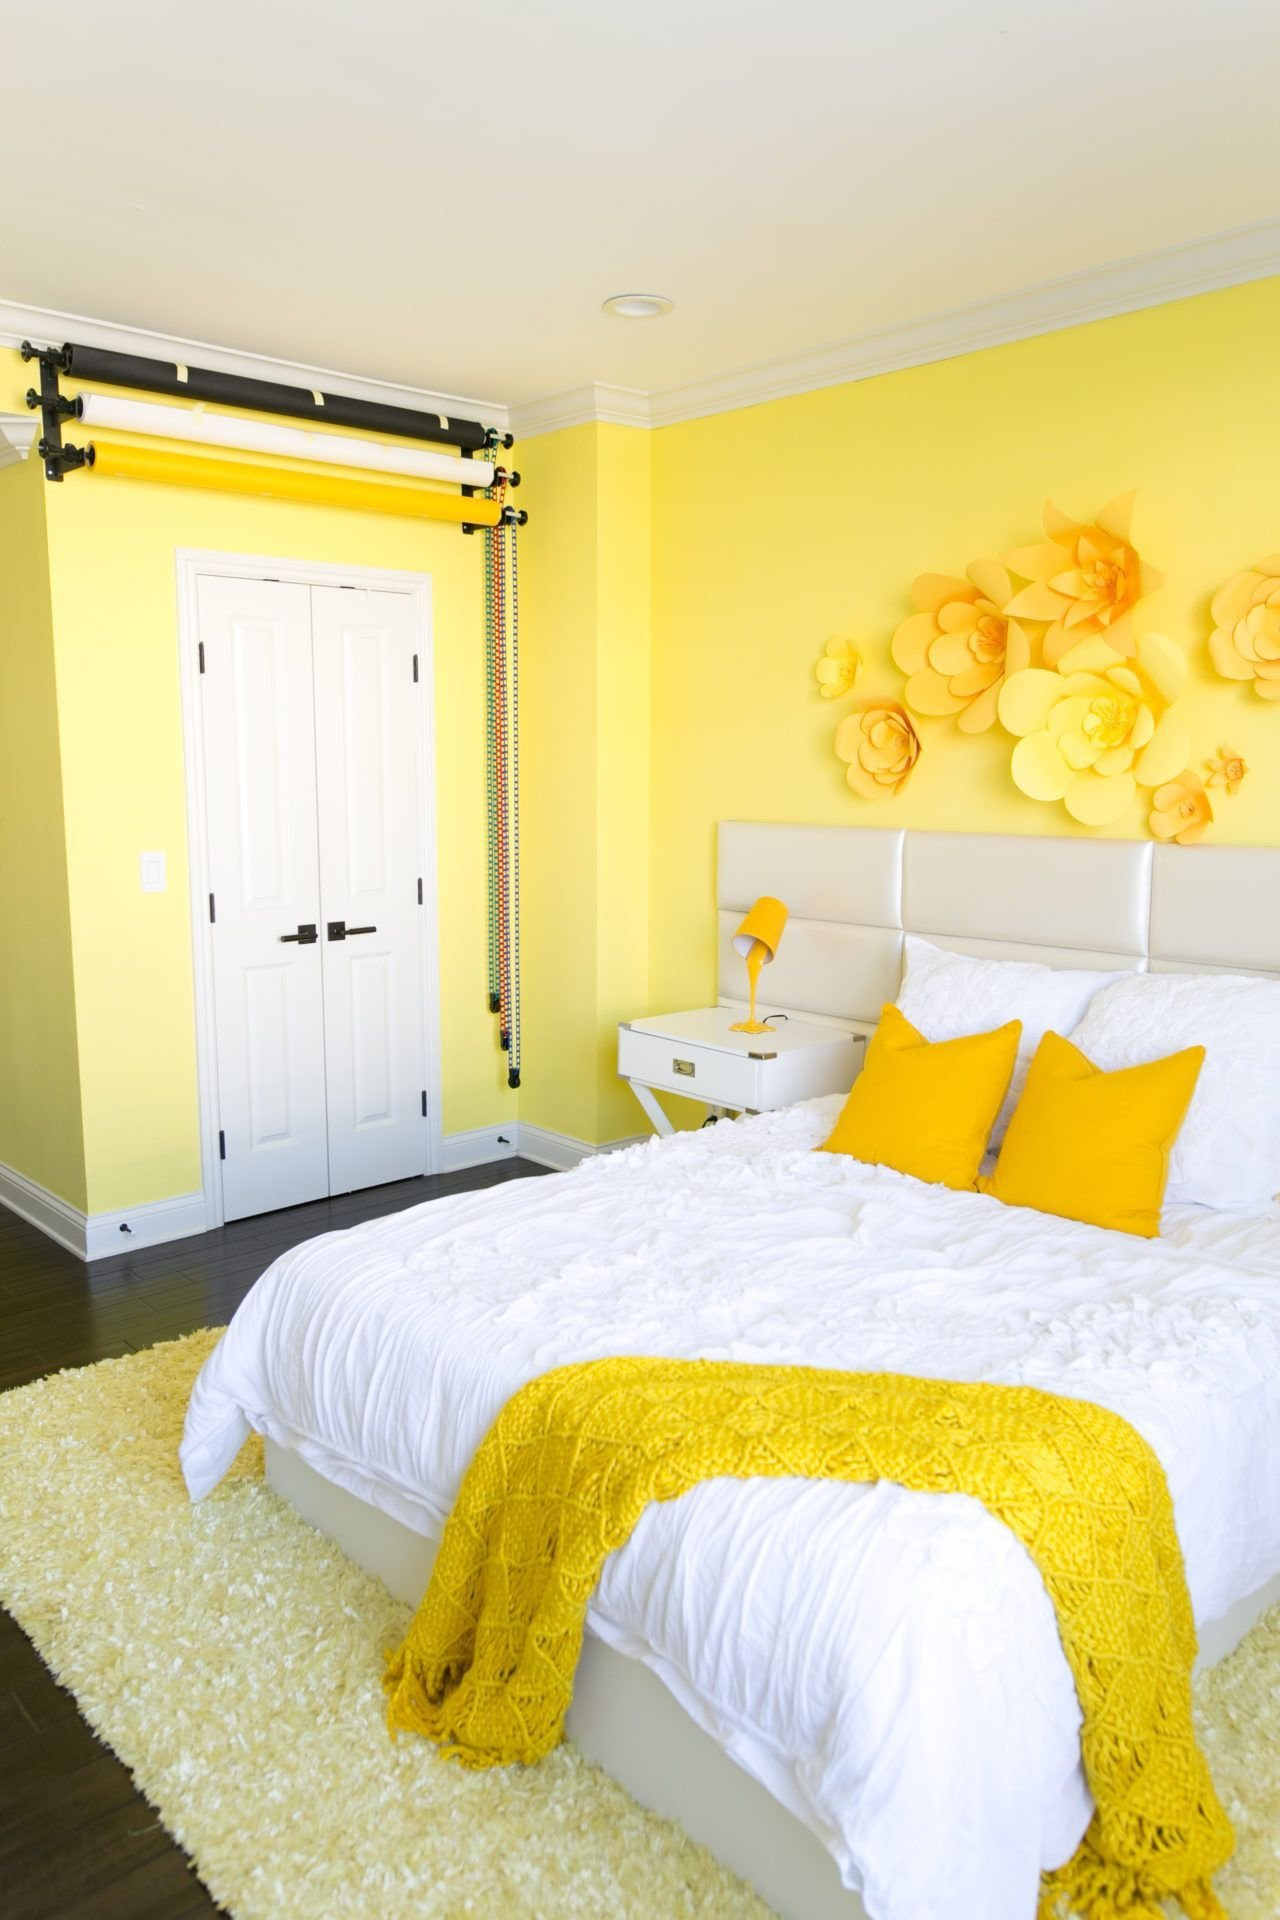 Best Adelaine Morin's Hello Yellow Bedroom Makeover In 2019 Bedrooms Aesthetic Room Decor With Pictures